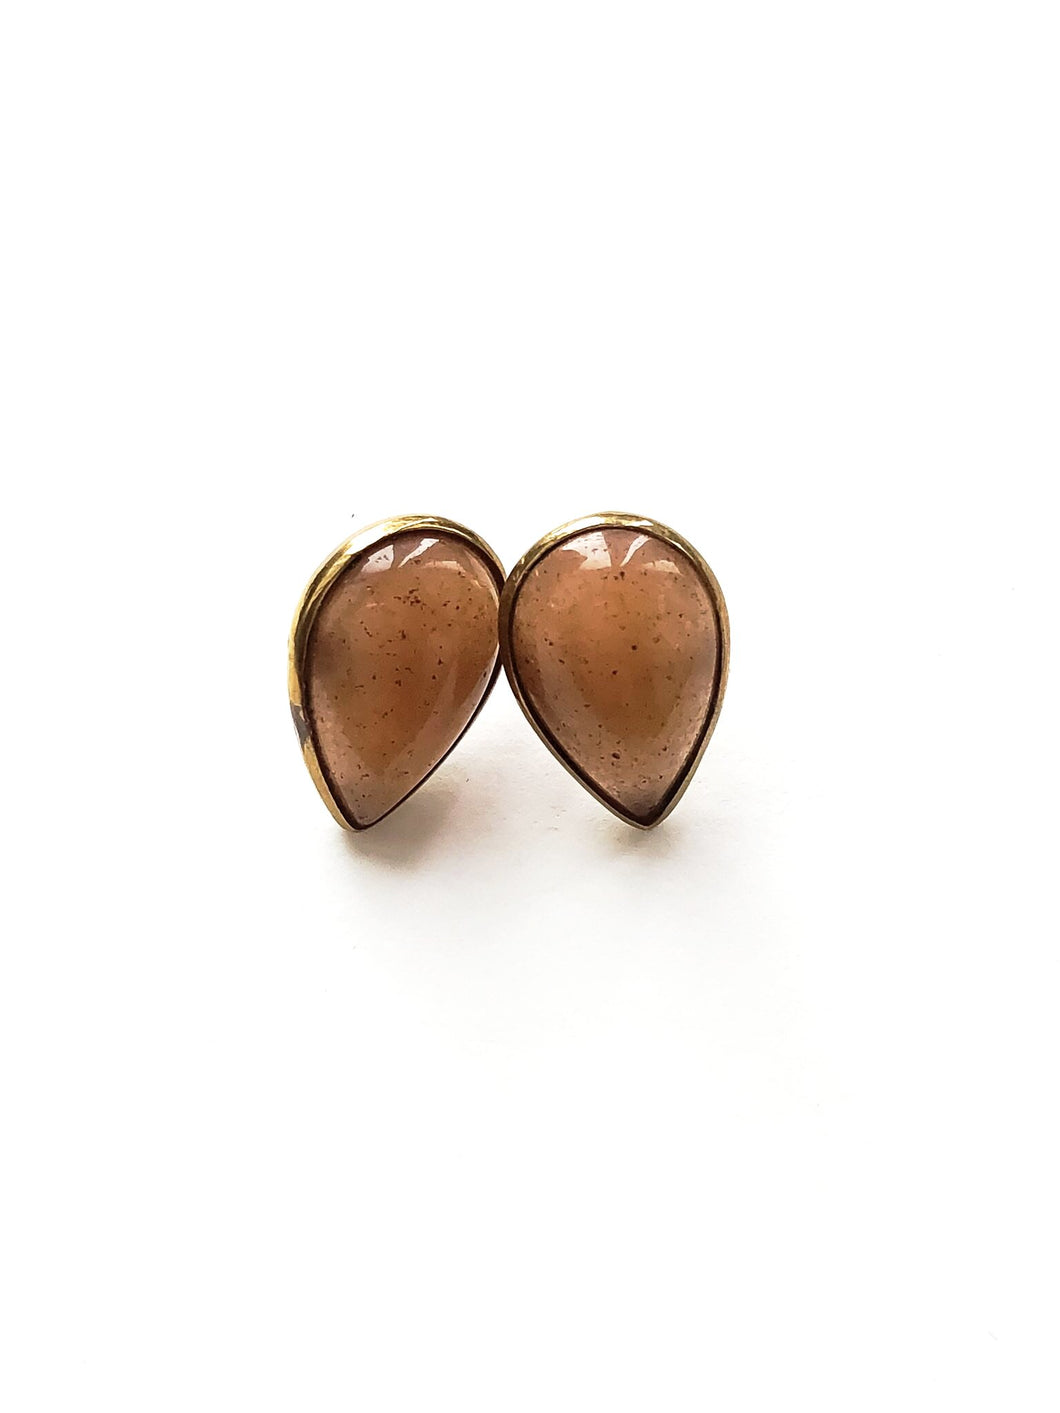 Orange Moonstone Stud Earrings